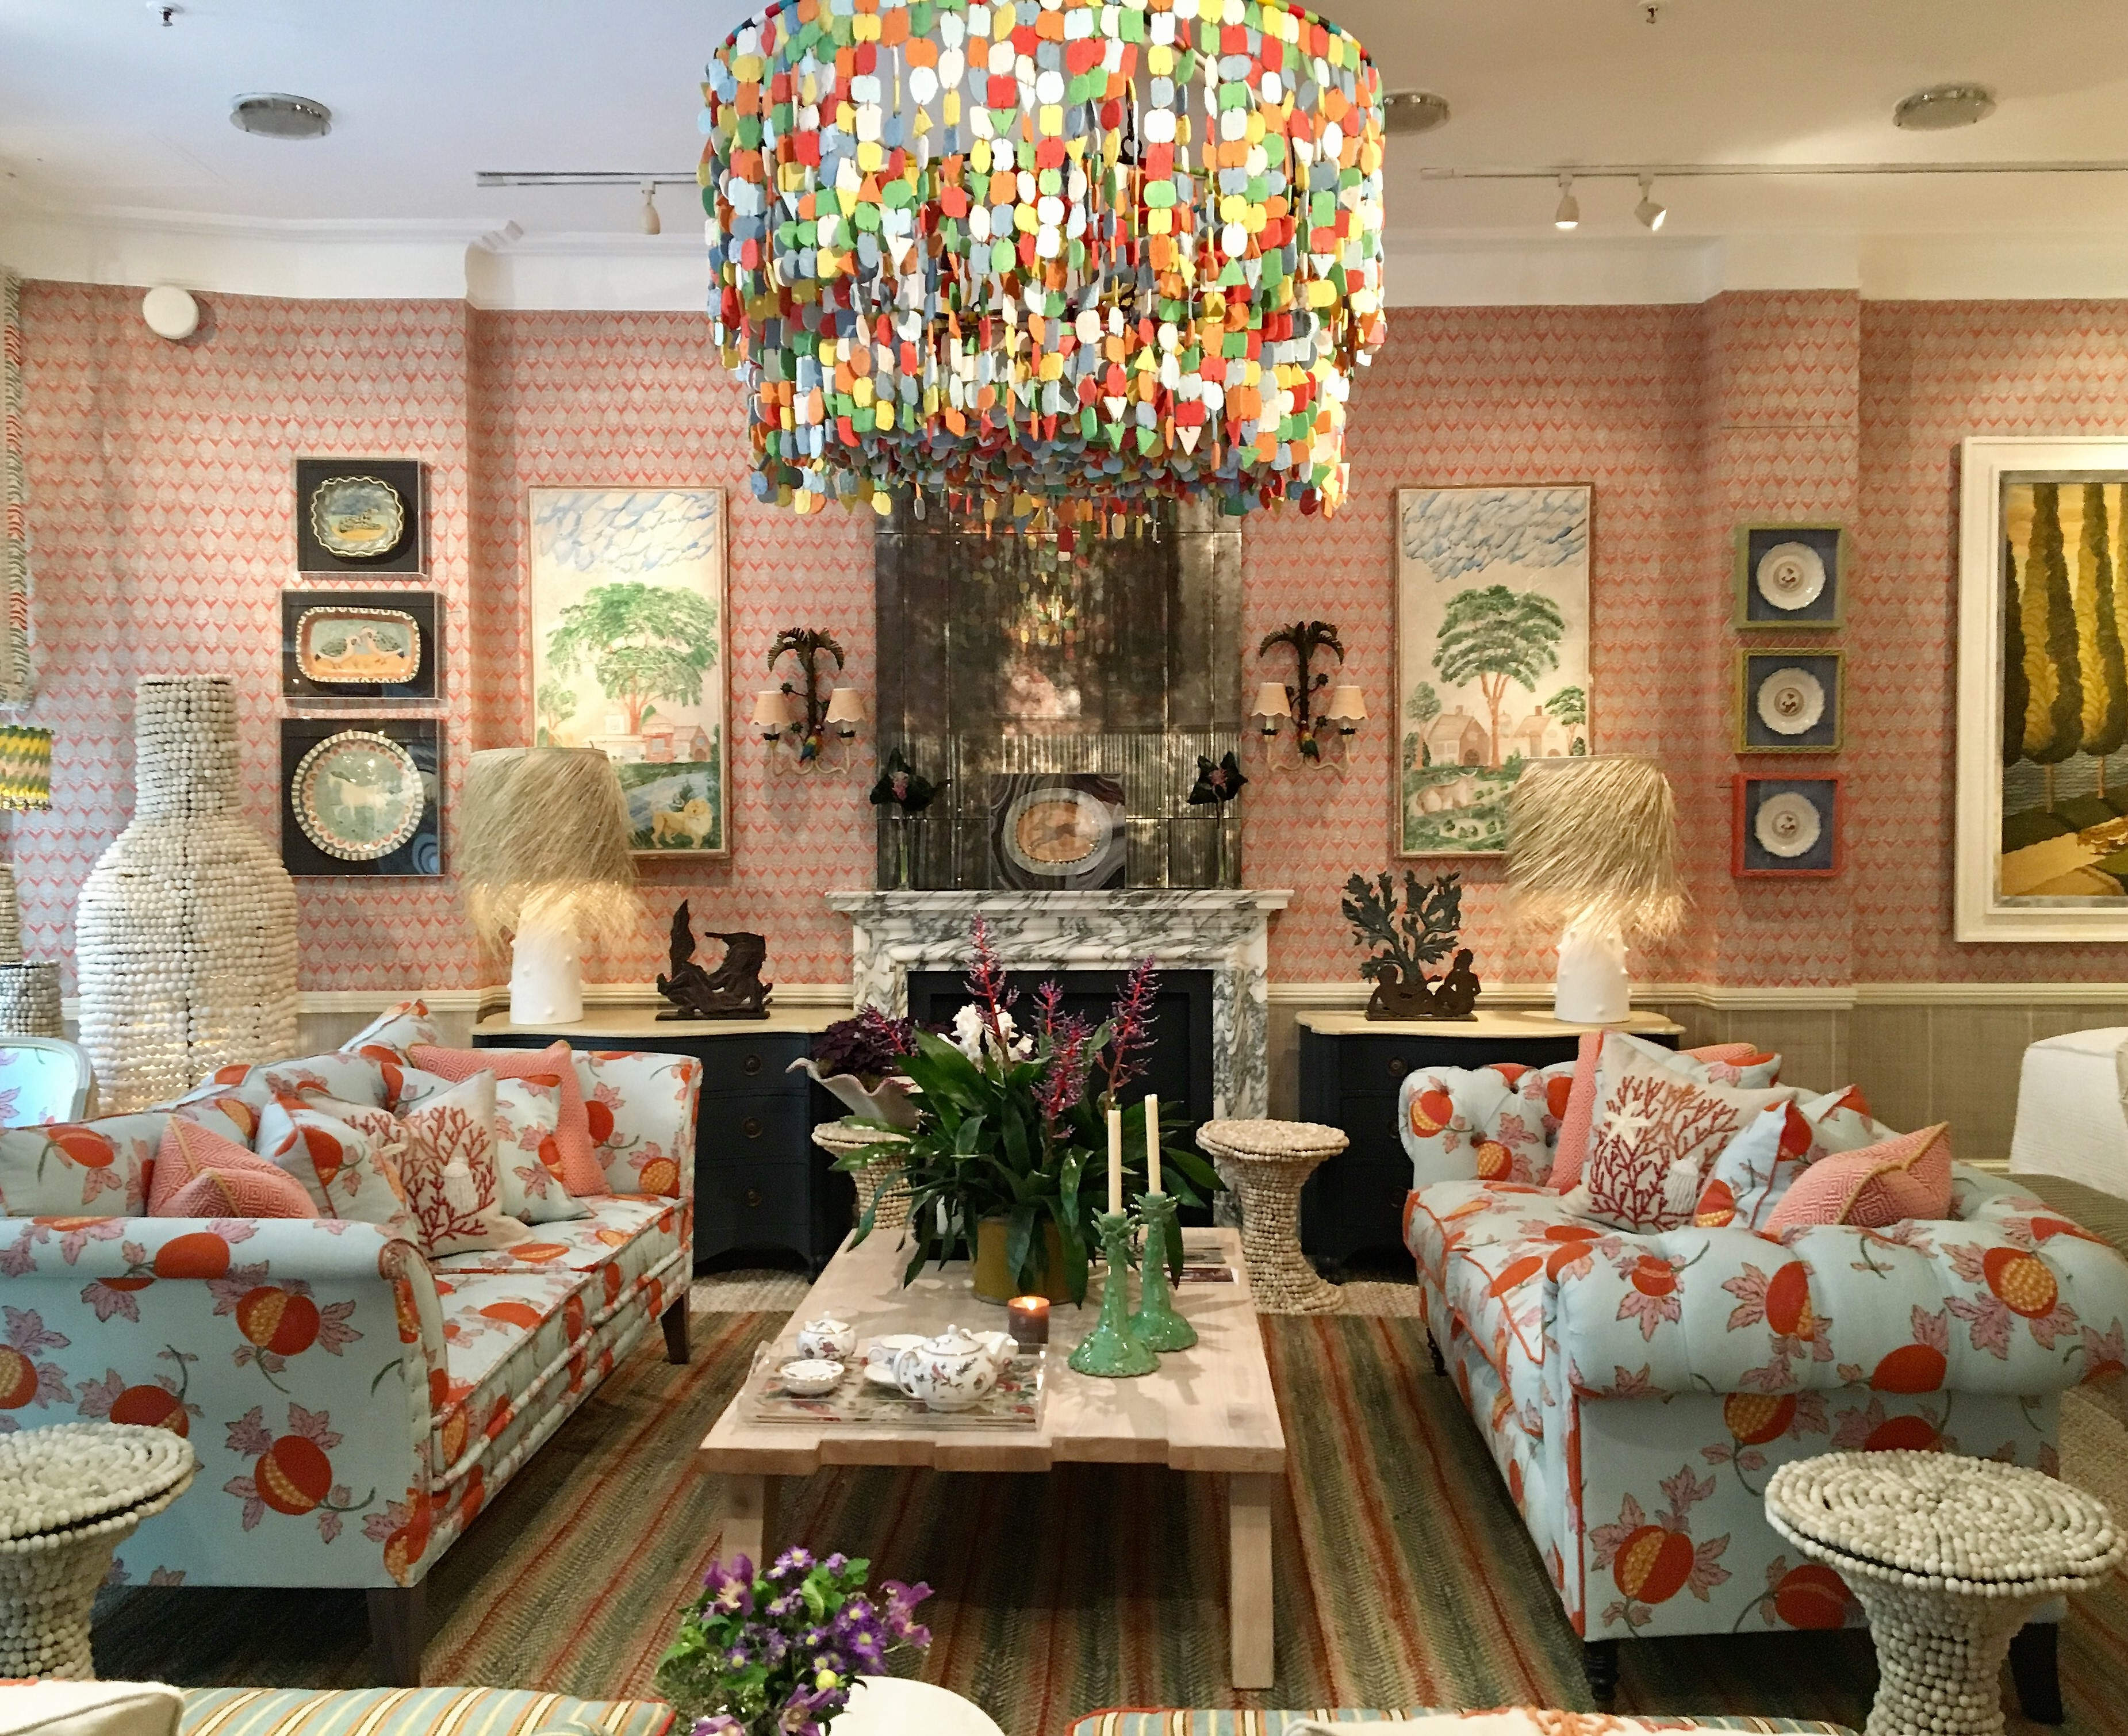 Carribean inspired room by leading interior designer Kit Kemp in the Turnell and Gigon showroom at Focus 2018 in the London Design Festival